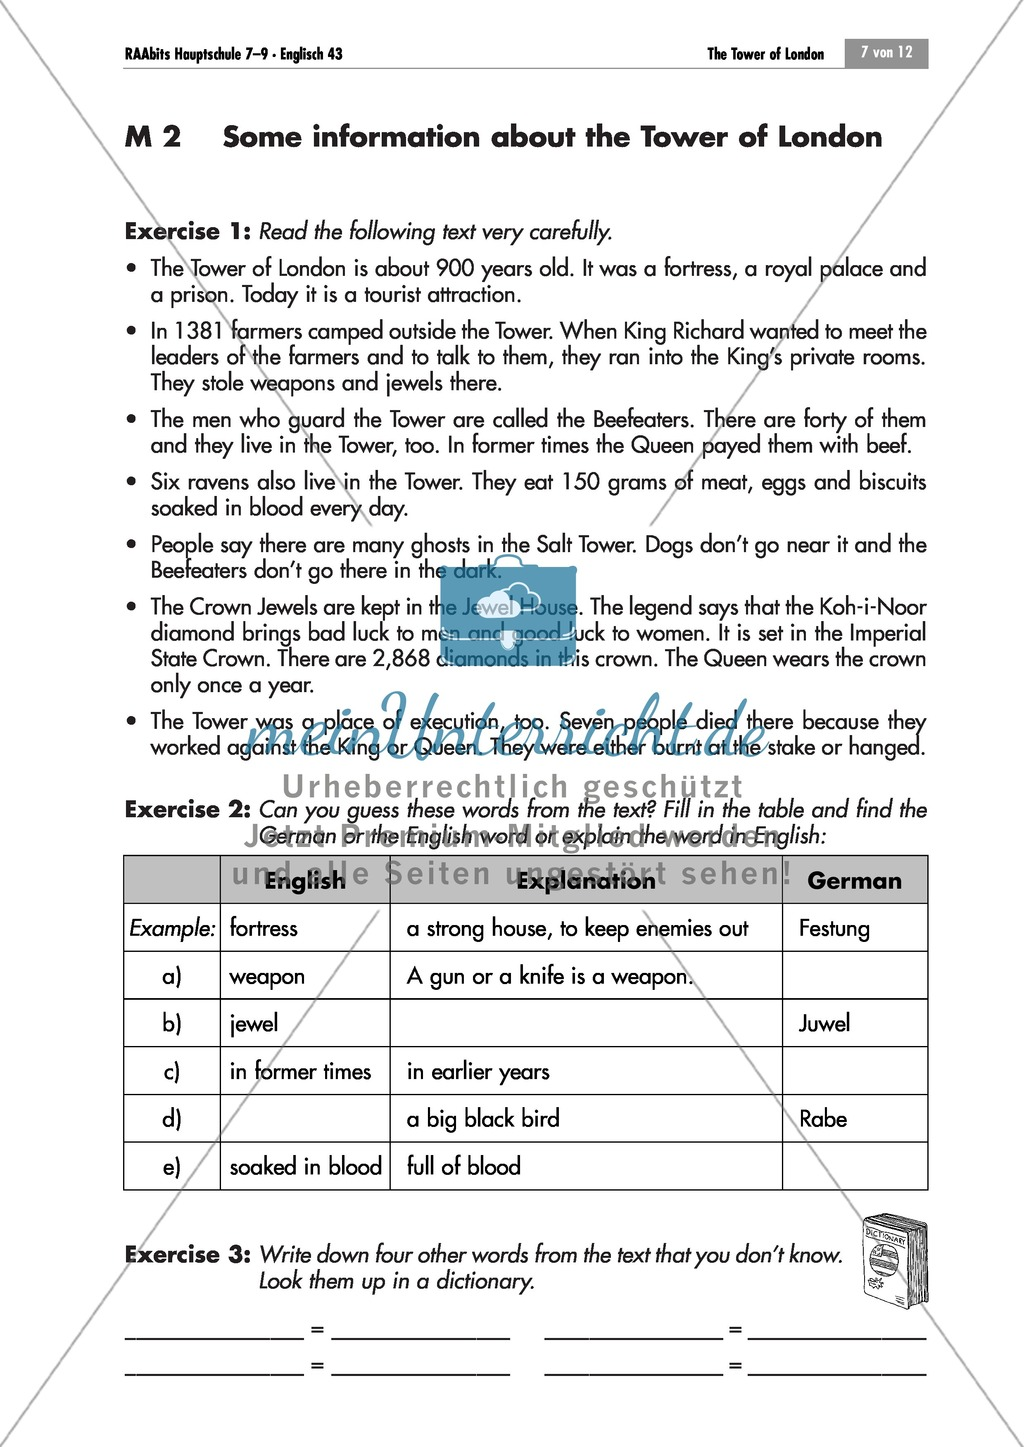 The Tower of London: Finding one's way on the site and background information with vocabulary work Preview 3